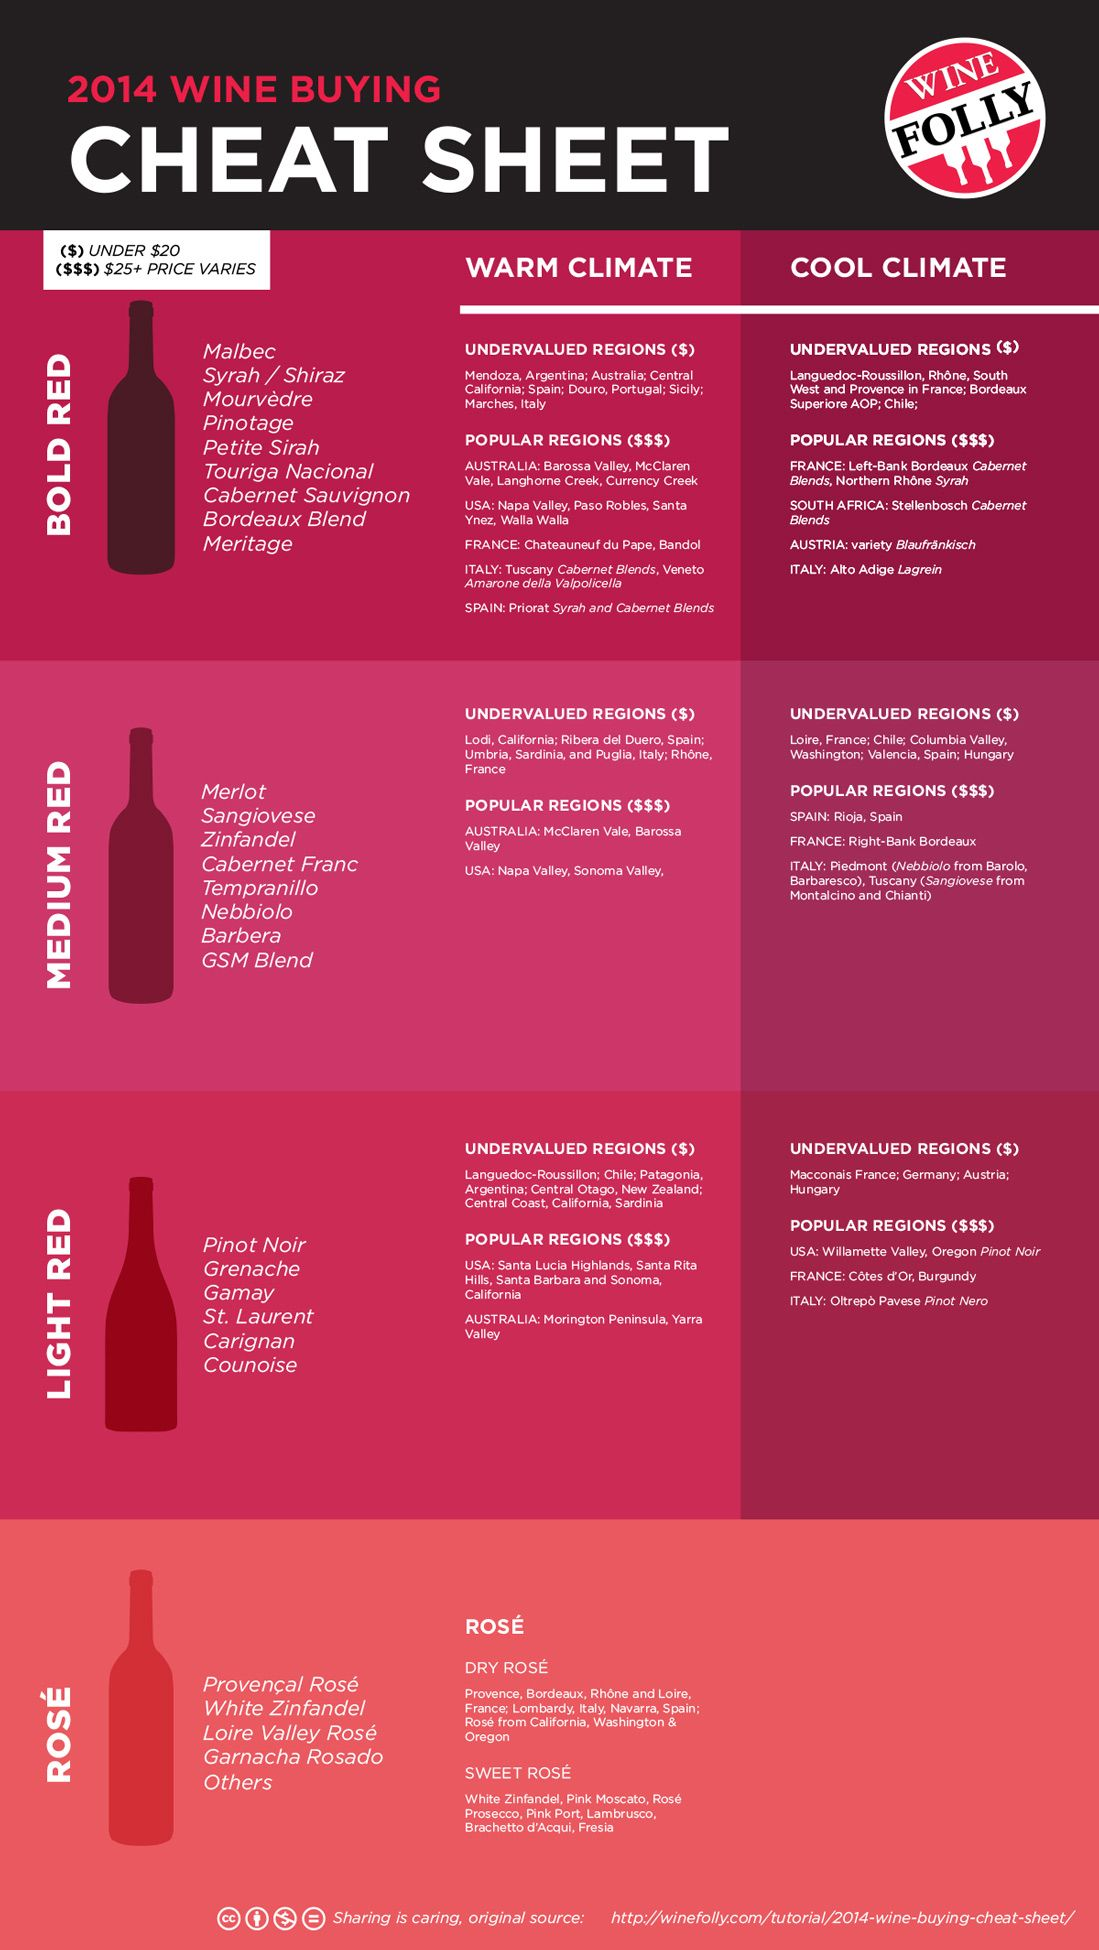 2014 Wine Folly Wine Buying Cheat Sheet Get The Free 3 Page Guide Http Wfol Ly Pelzjl Wine Facts Buy Wine Wine Recipes